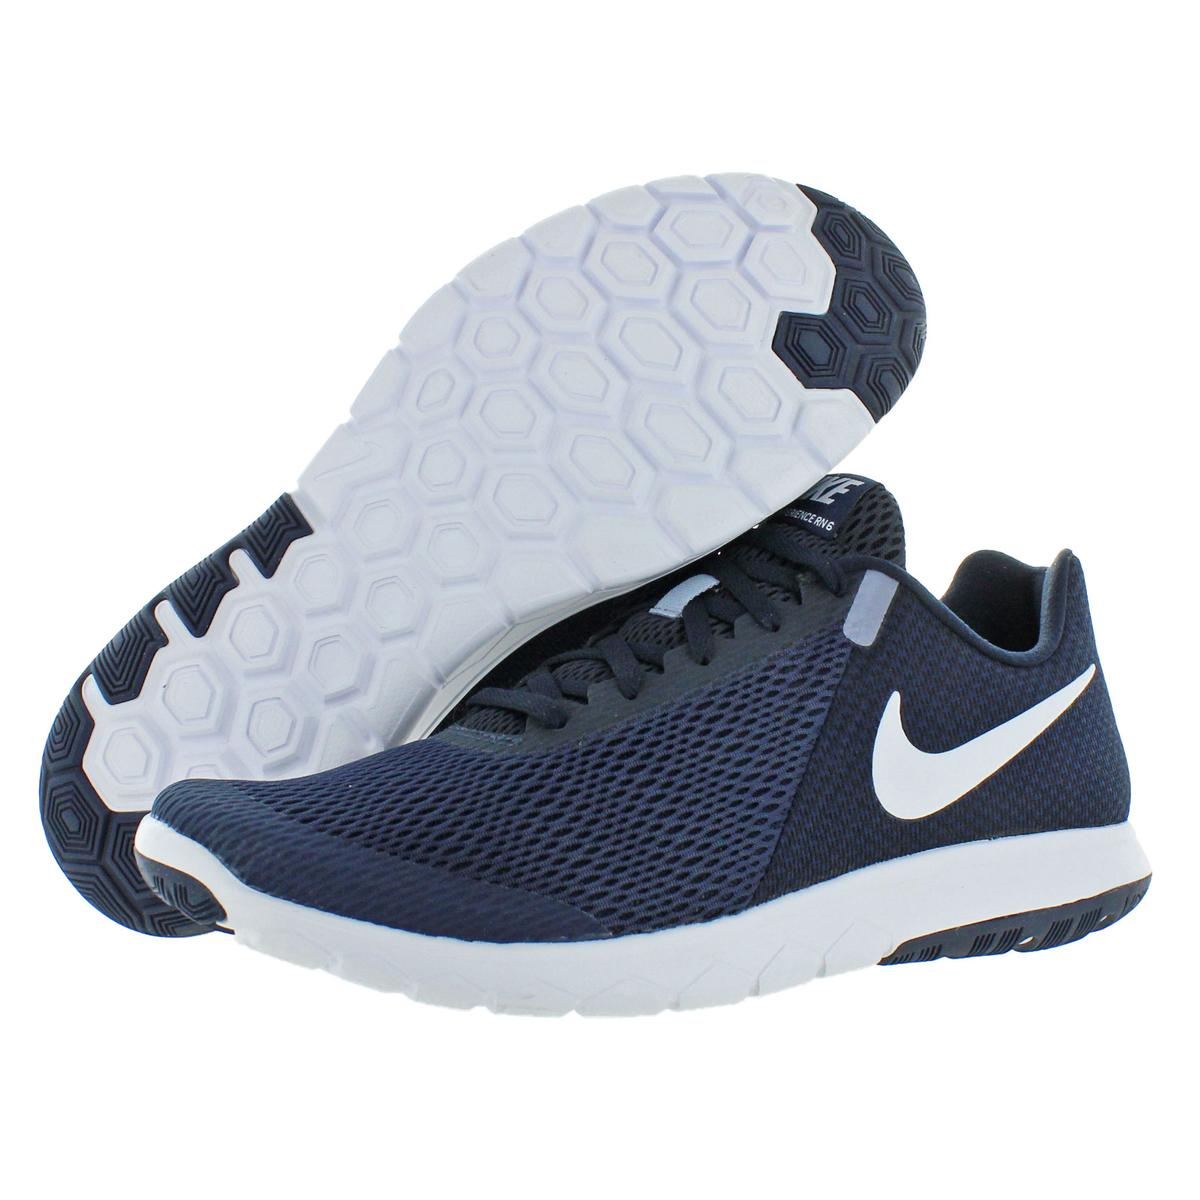 8776c8b5fe8c Nike Mens Flex Experience RN 6 Athletic Trainer Running Shoes ...